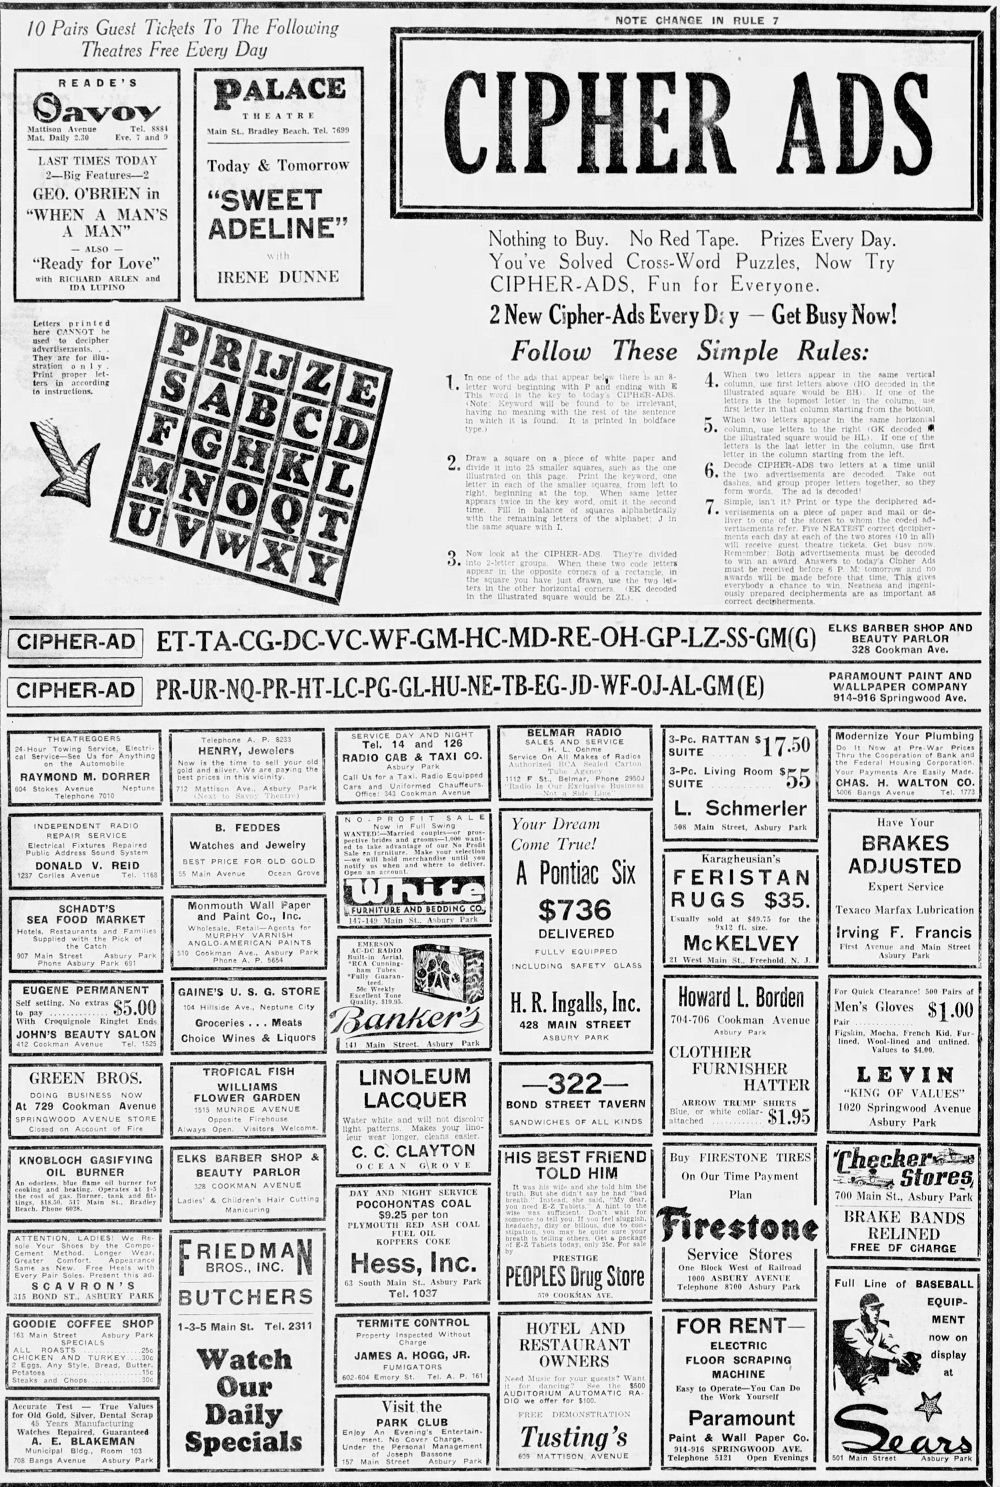 Cipherads-1935-03-04-medium